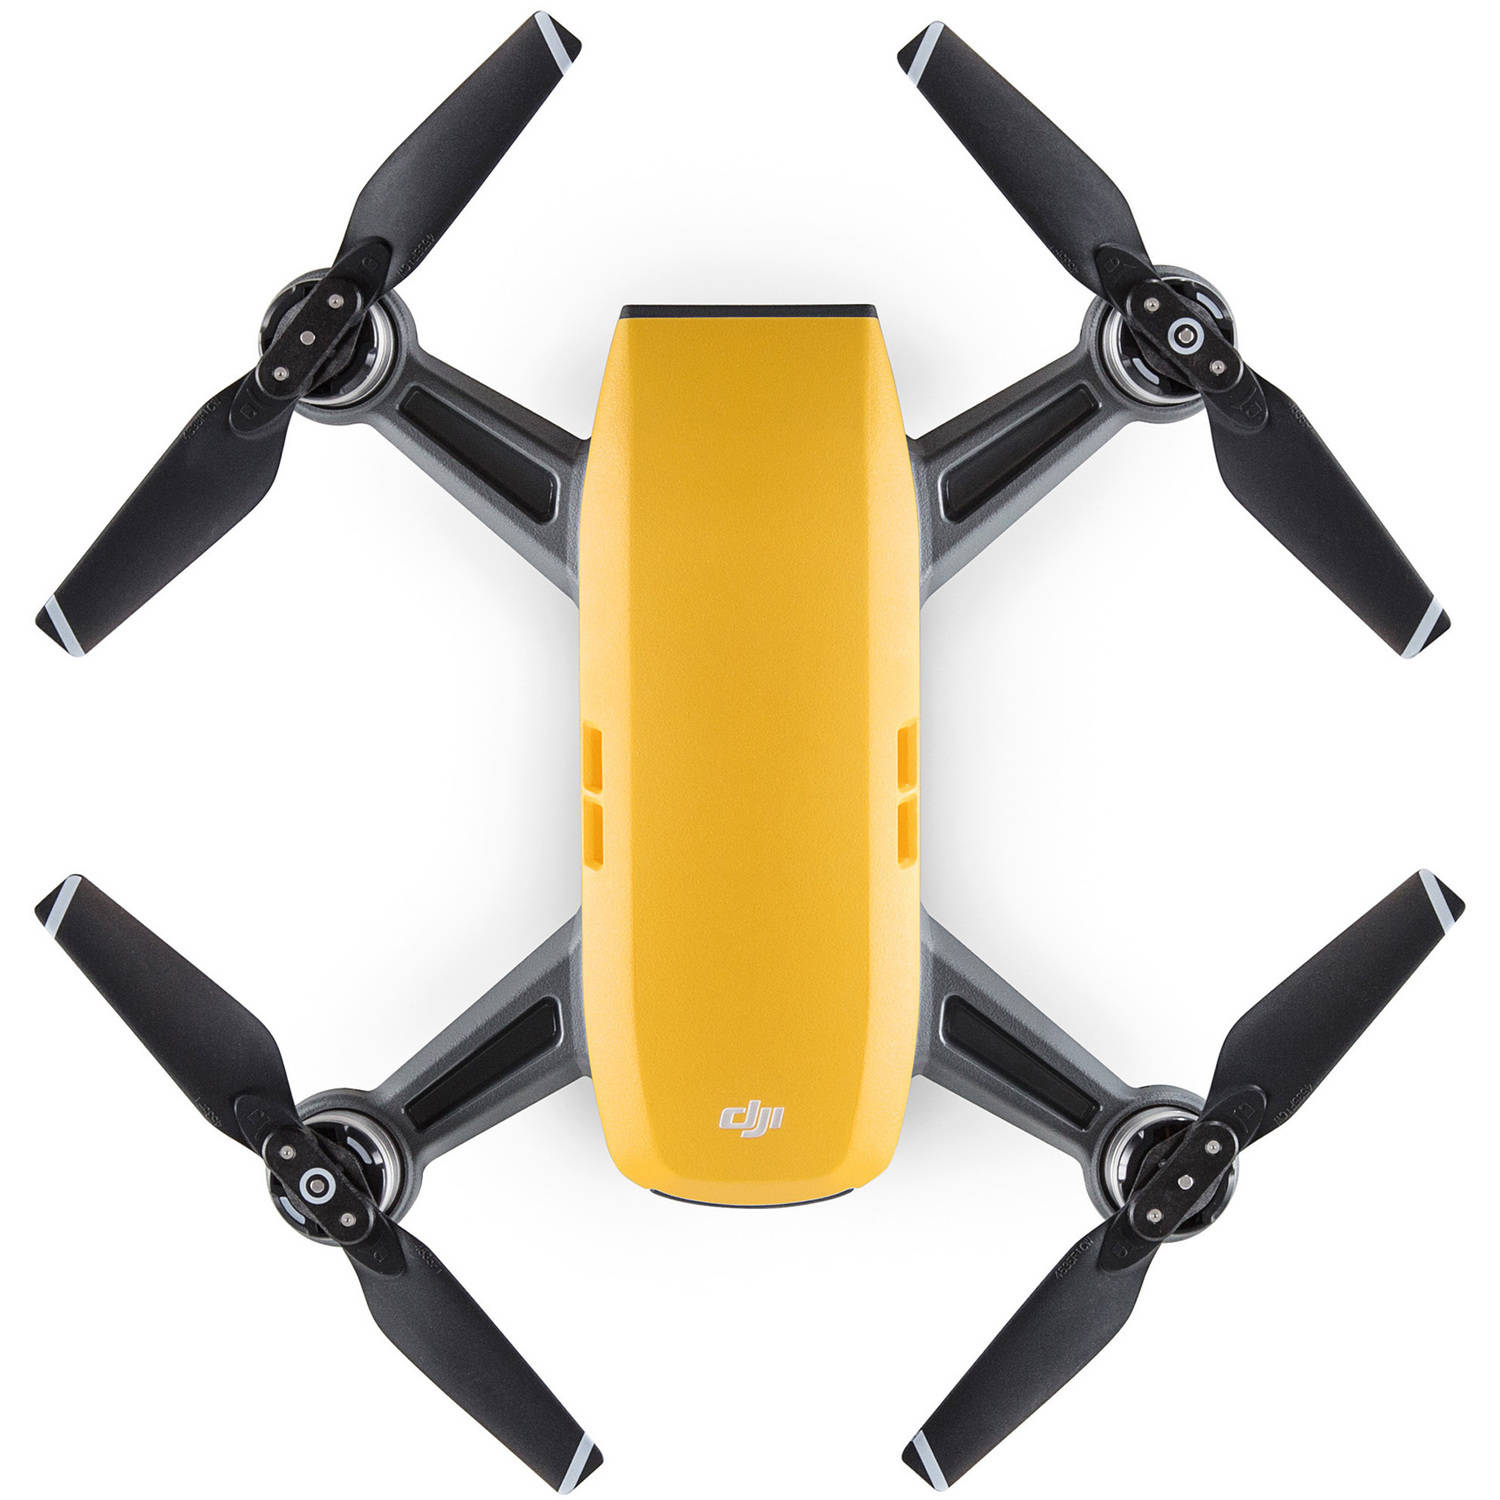 DJI Spark Drone in Alpine White by DJI